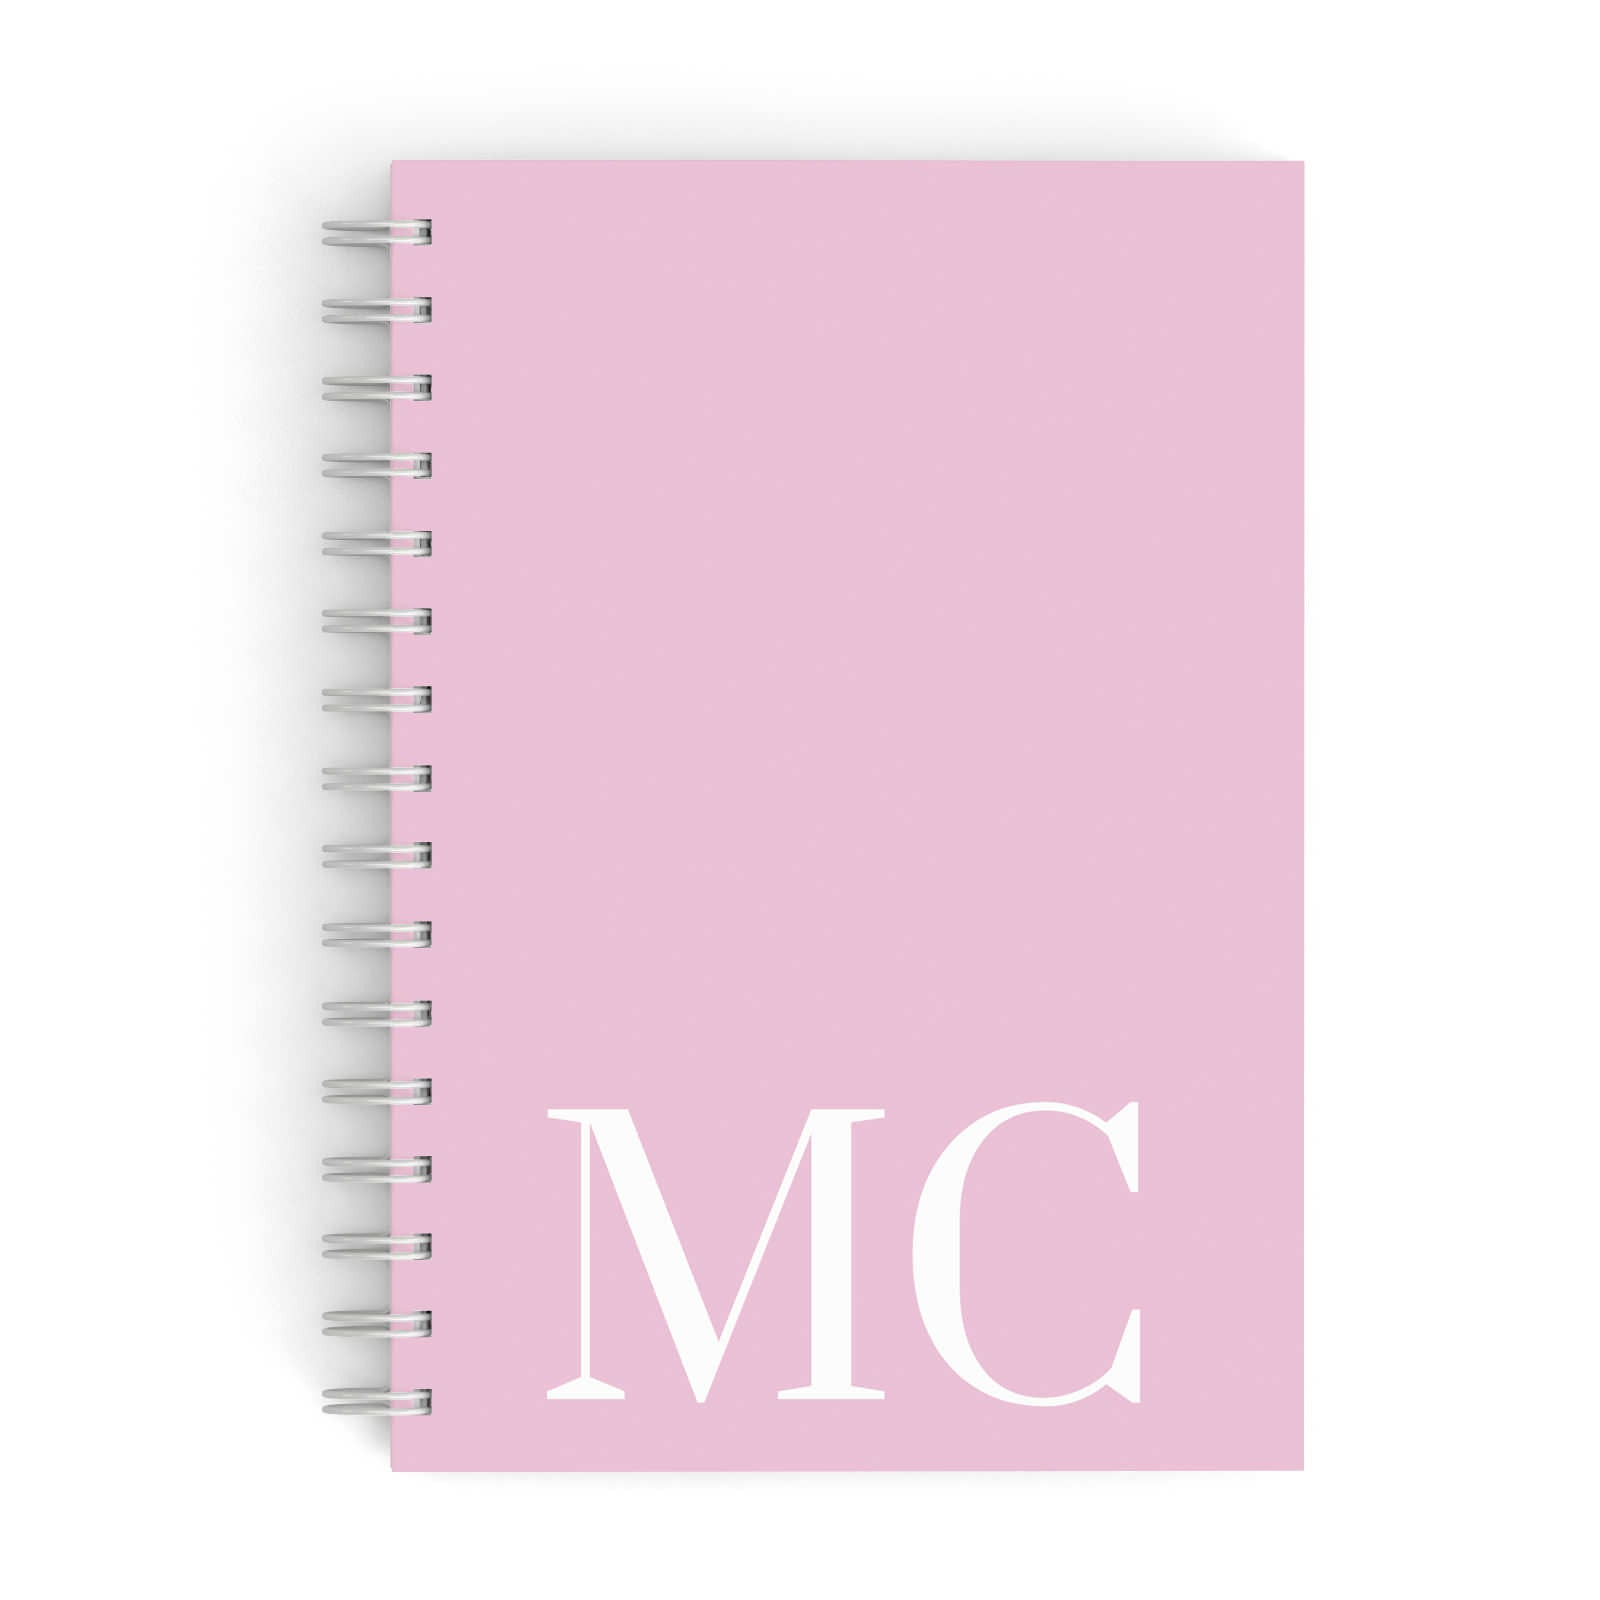 Initials Personalised 2 A5 Hardcover Notebook